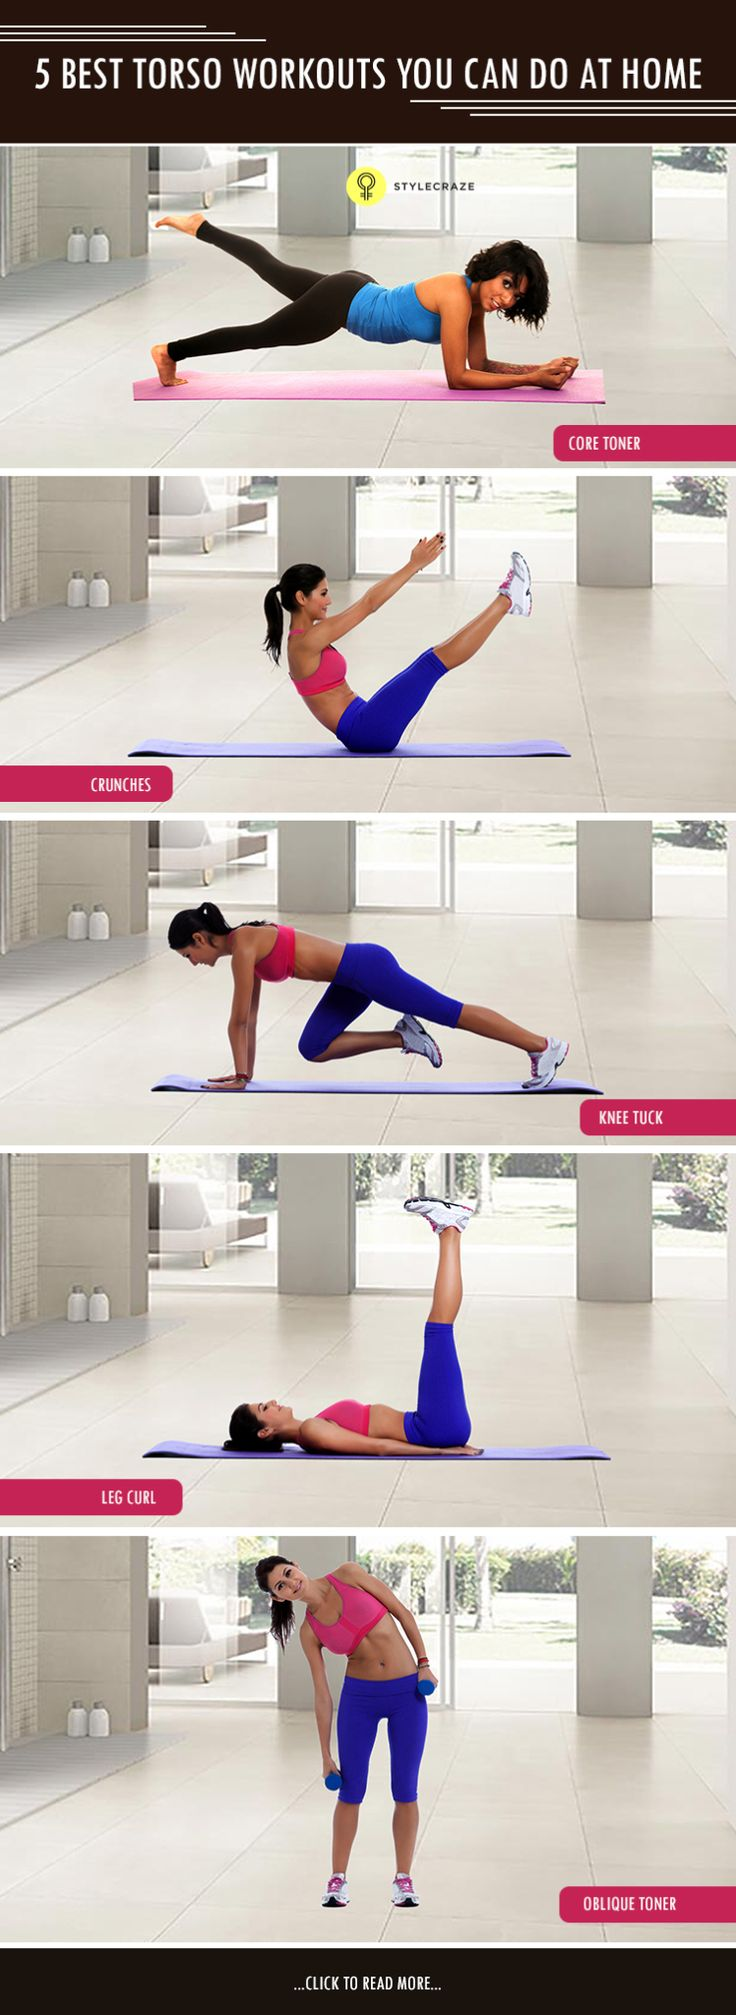 5-Best-Torso-Workouts-You-Can-Do-At-Home